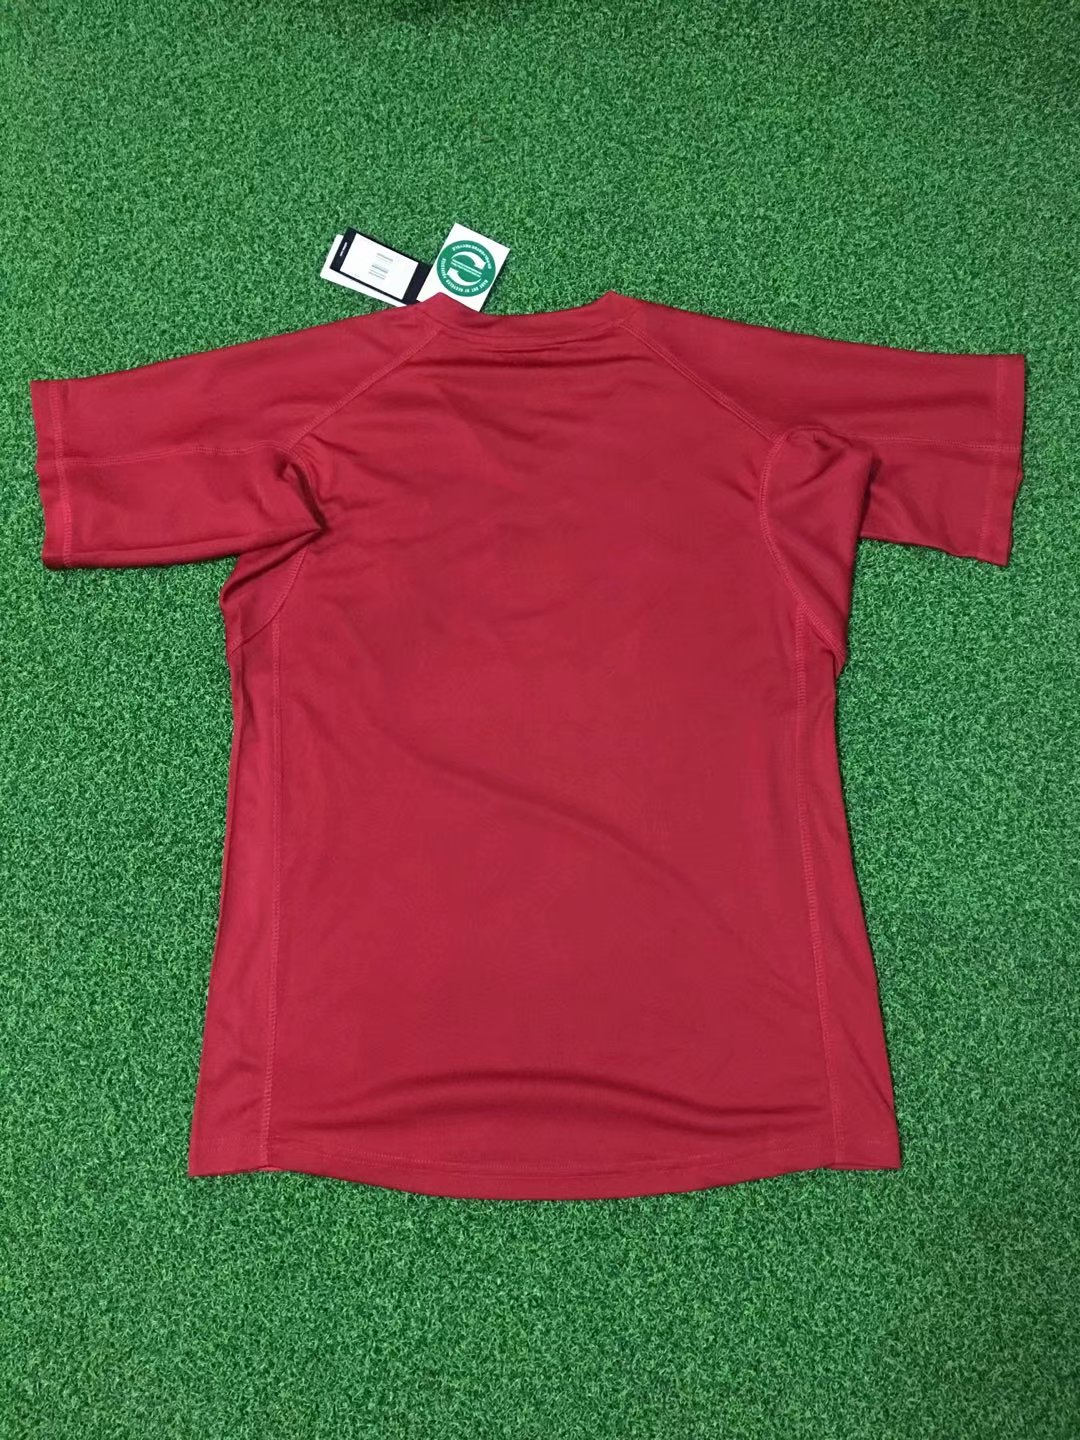 e67bb96c3be US  15.8 - Juventus Goalkeeper Red Jersey Short Sleeve Men s 2018 19 -  www.fcsoccerworld.com